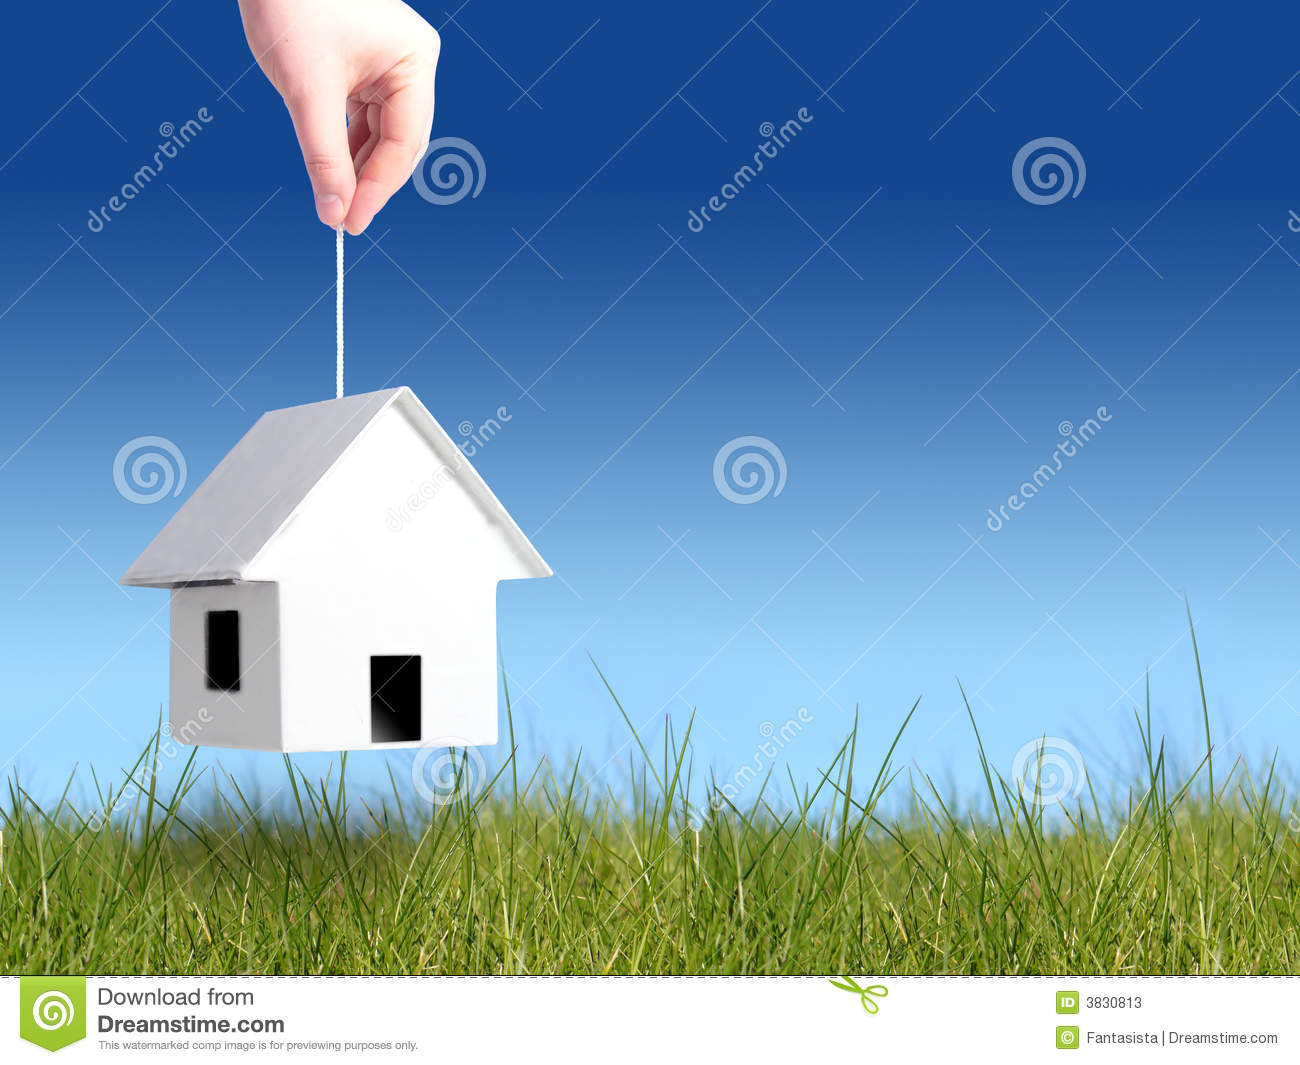 Buying house concept